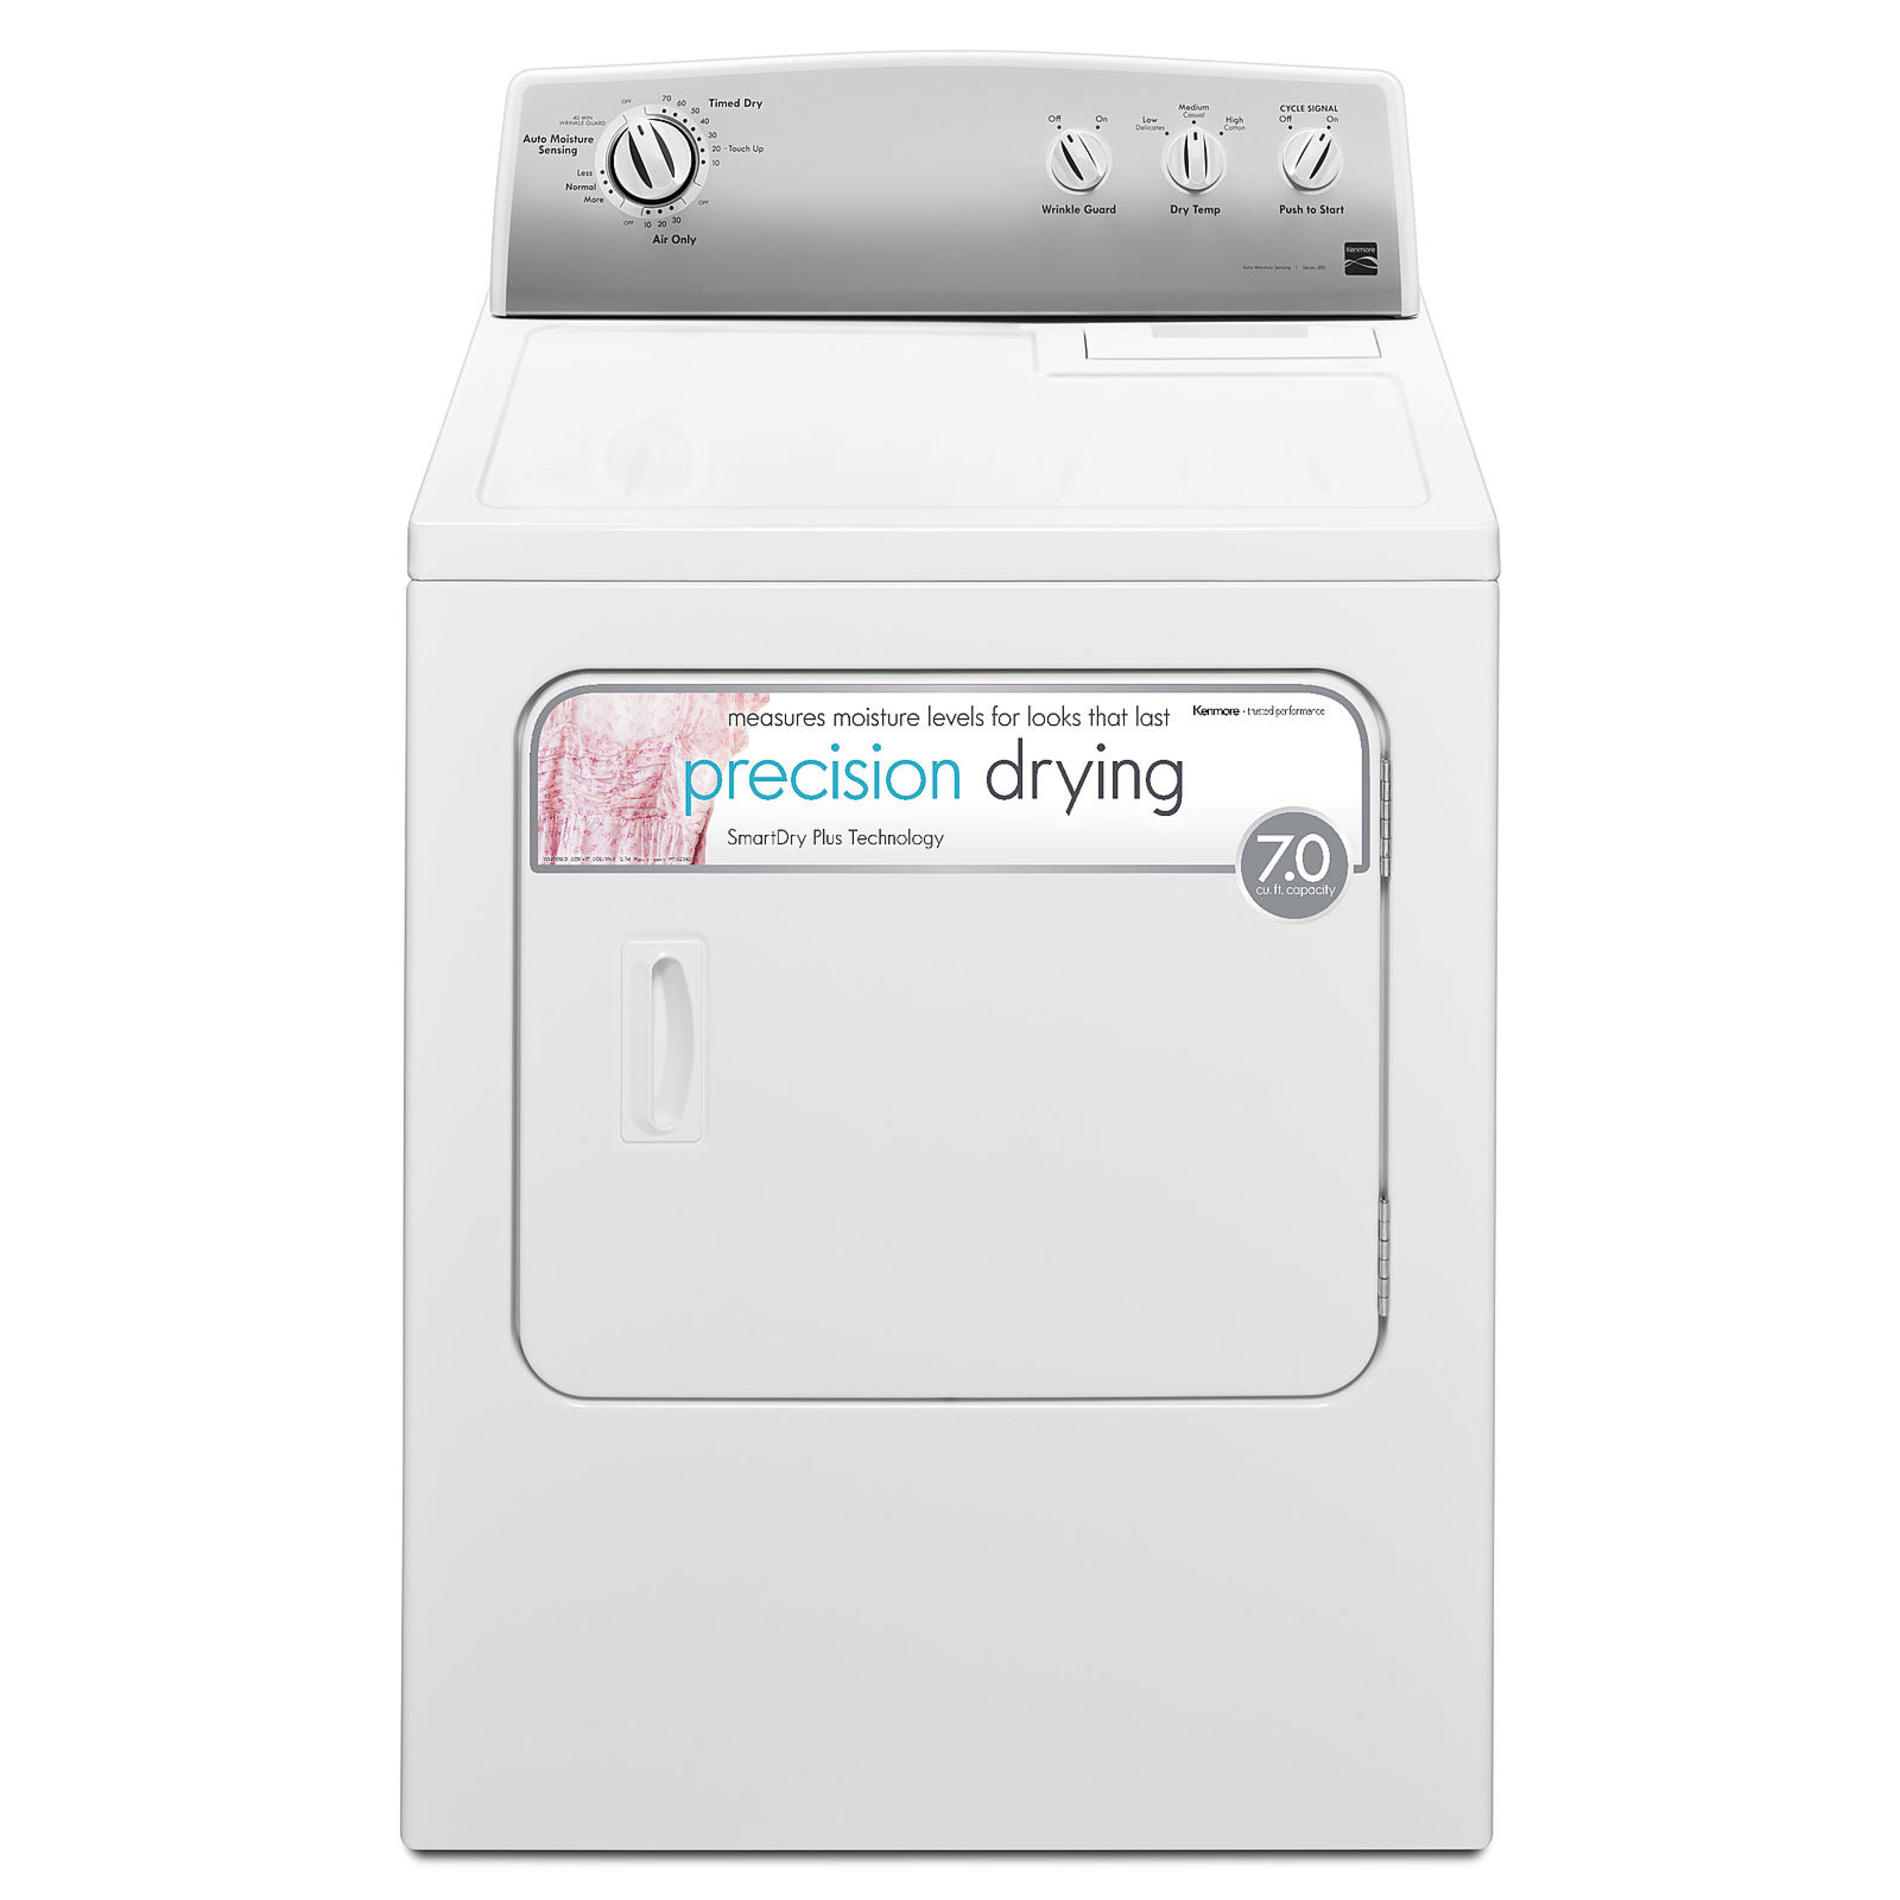 62342-7-0-cu-ft-Electric-Dryer-White